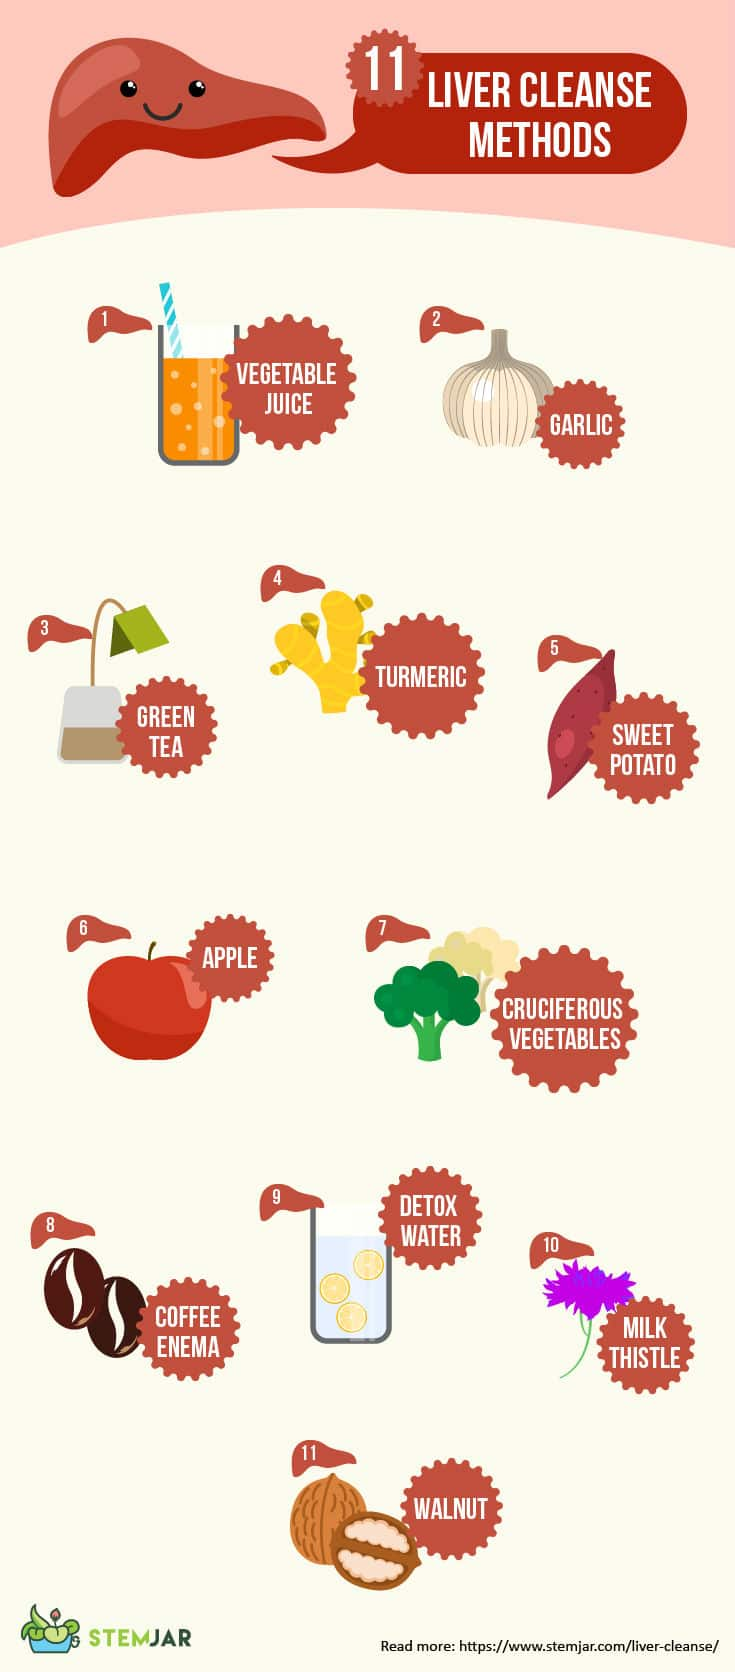 11 liver cleanse methods infographic